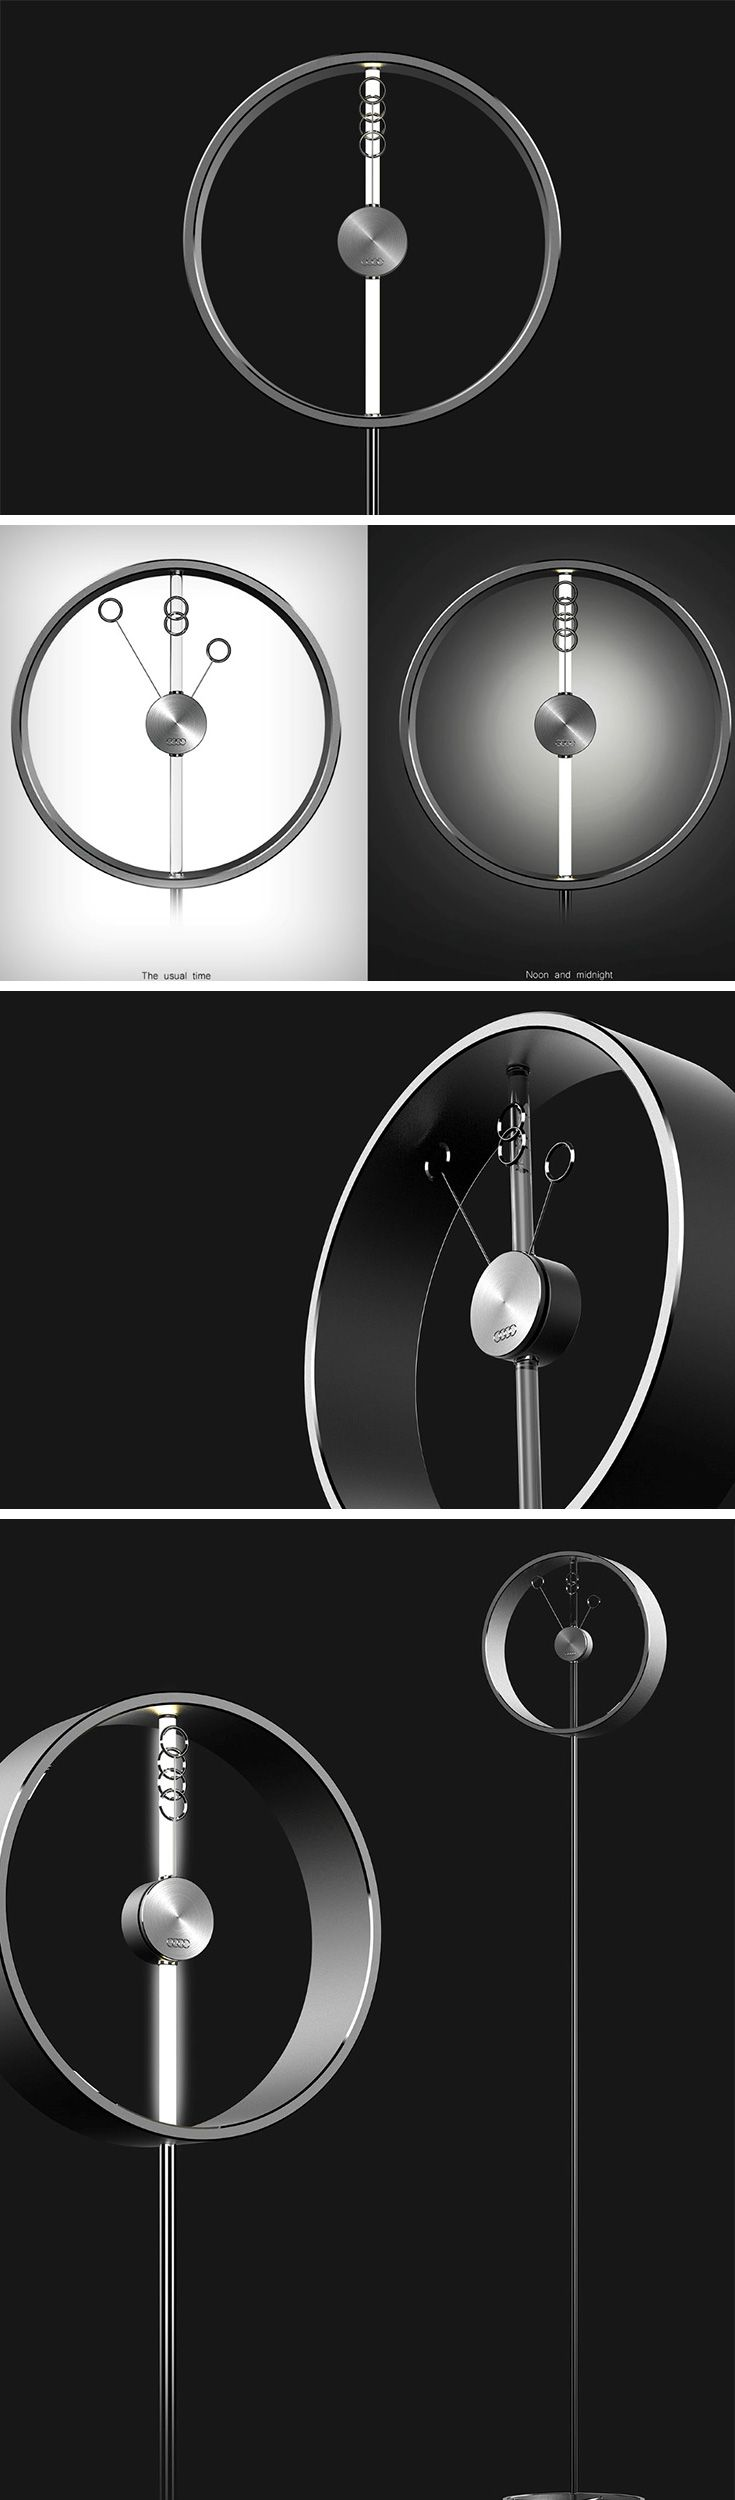 Time rushes by and so do Audi's cars. This rather innovative clock concept uses Audi's logo for some imaginative visual trickery and a pretty uniquely enjoyable time-telling experience!